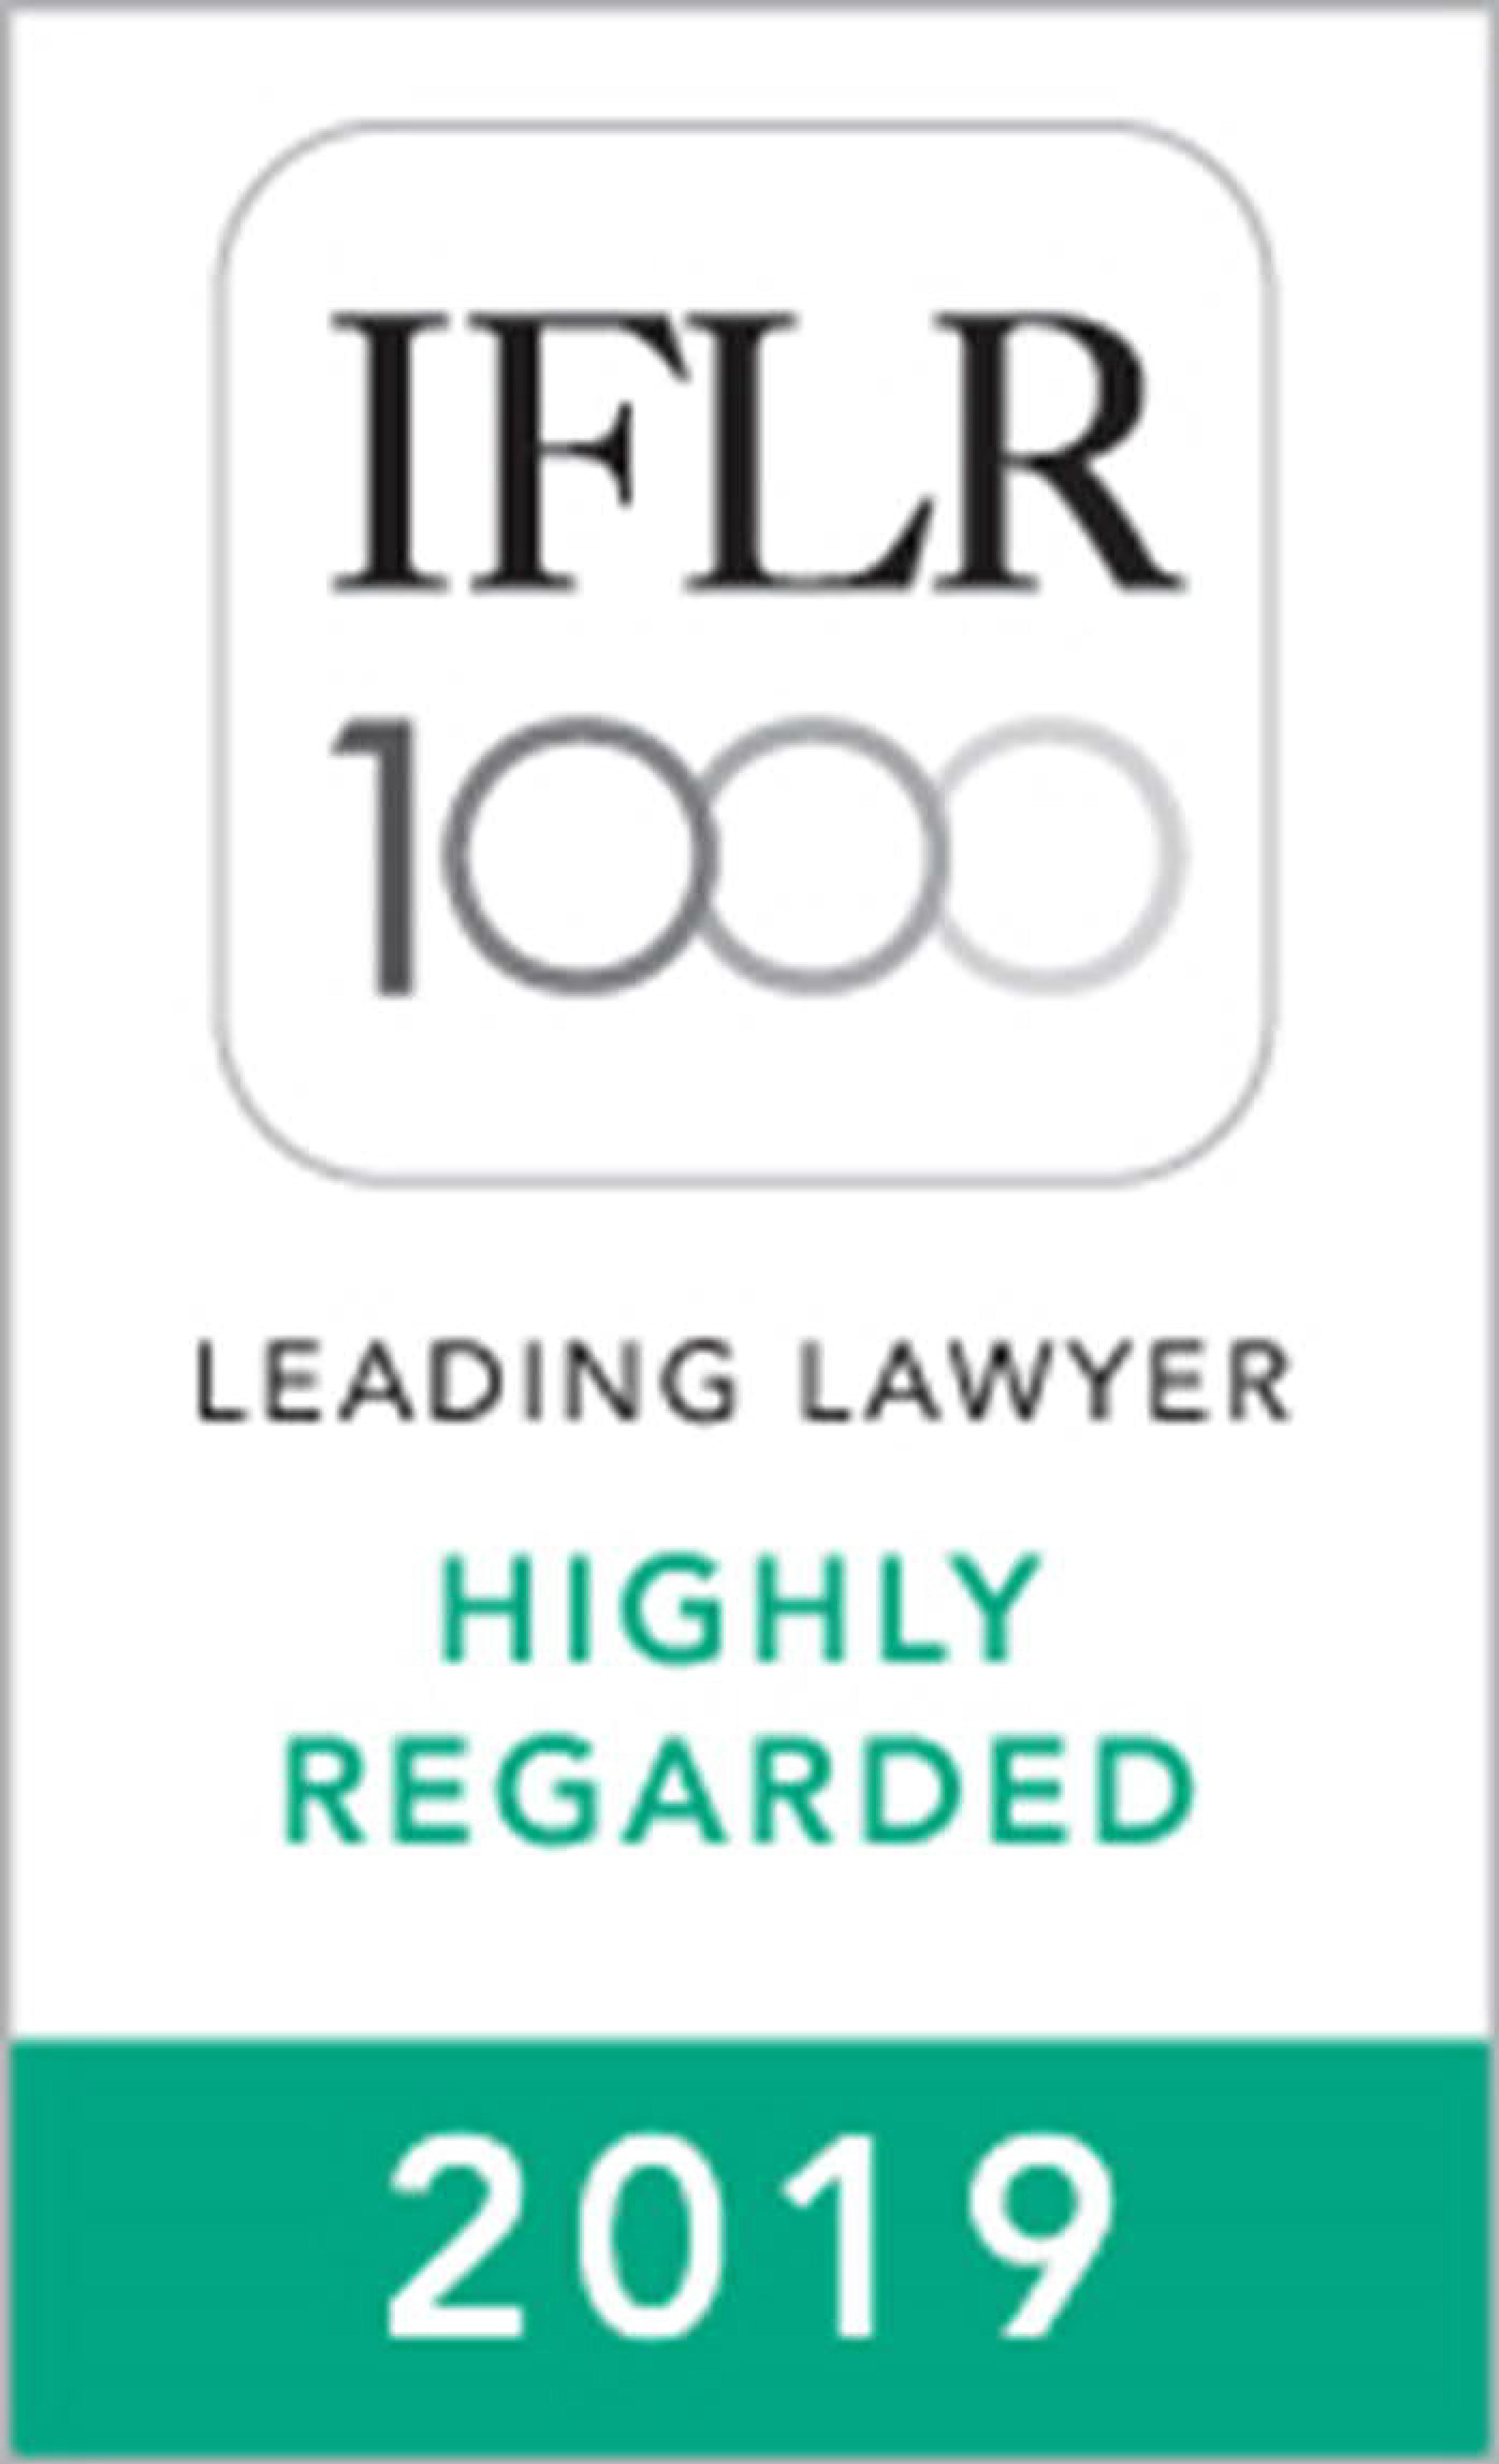 Highly Regarded Leading Lawyer in Financial & Corporate Law by IFLR1000, 2015-2019